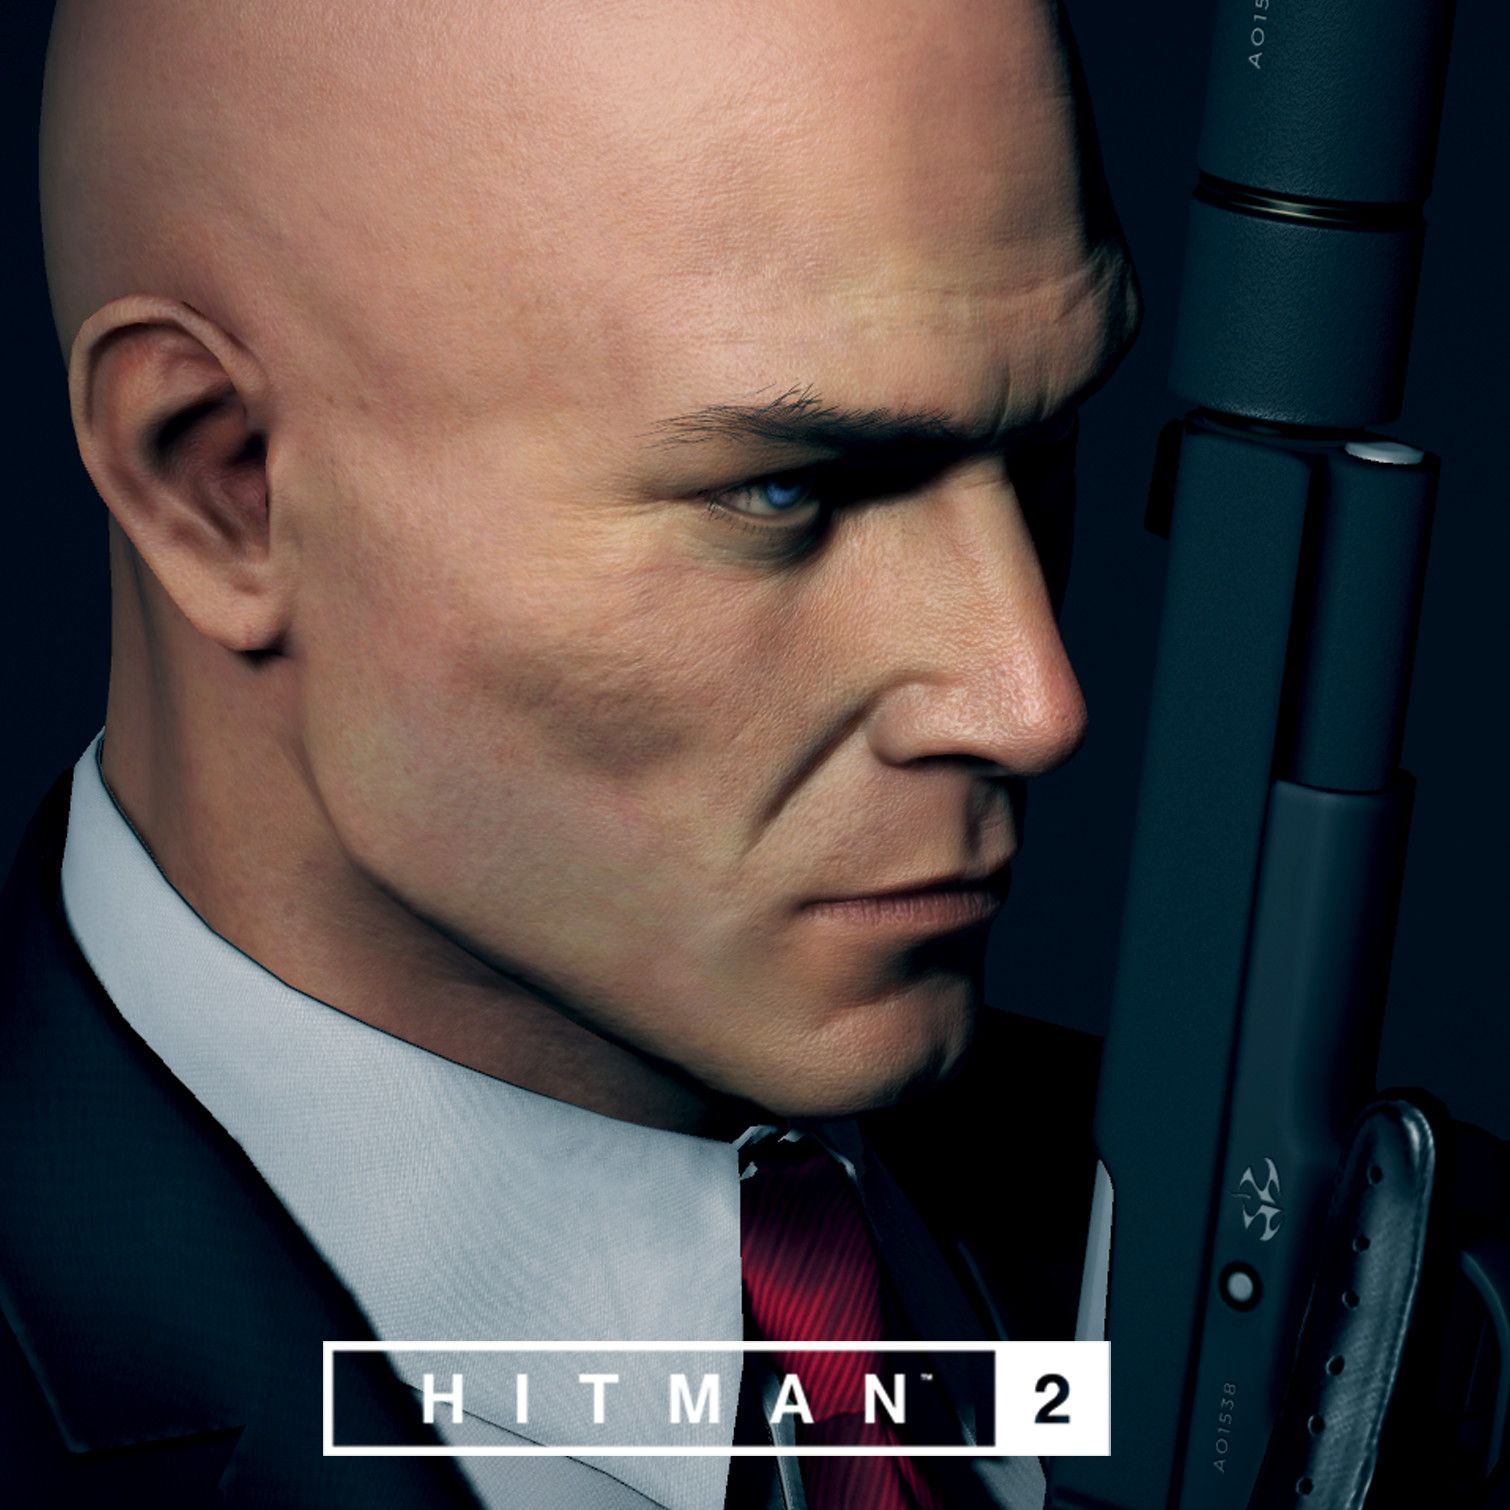 Pin By Mary Jovino On Gaming Artwork Hitman Agent 47